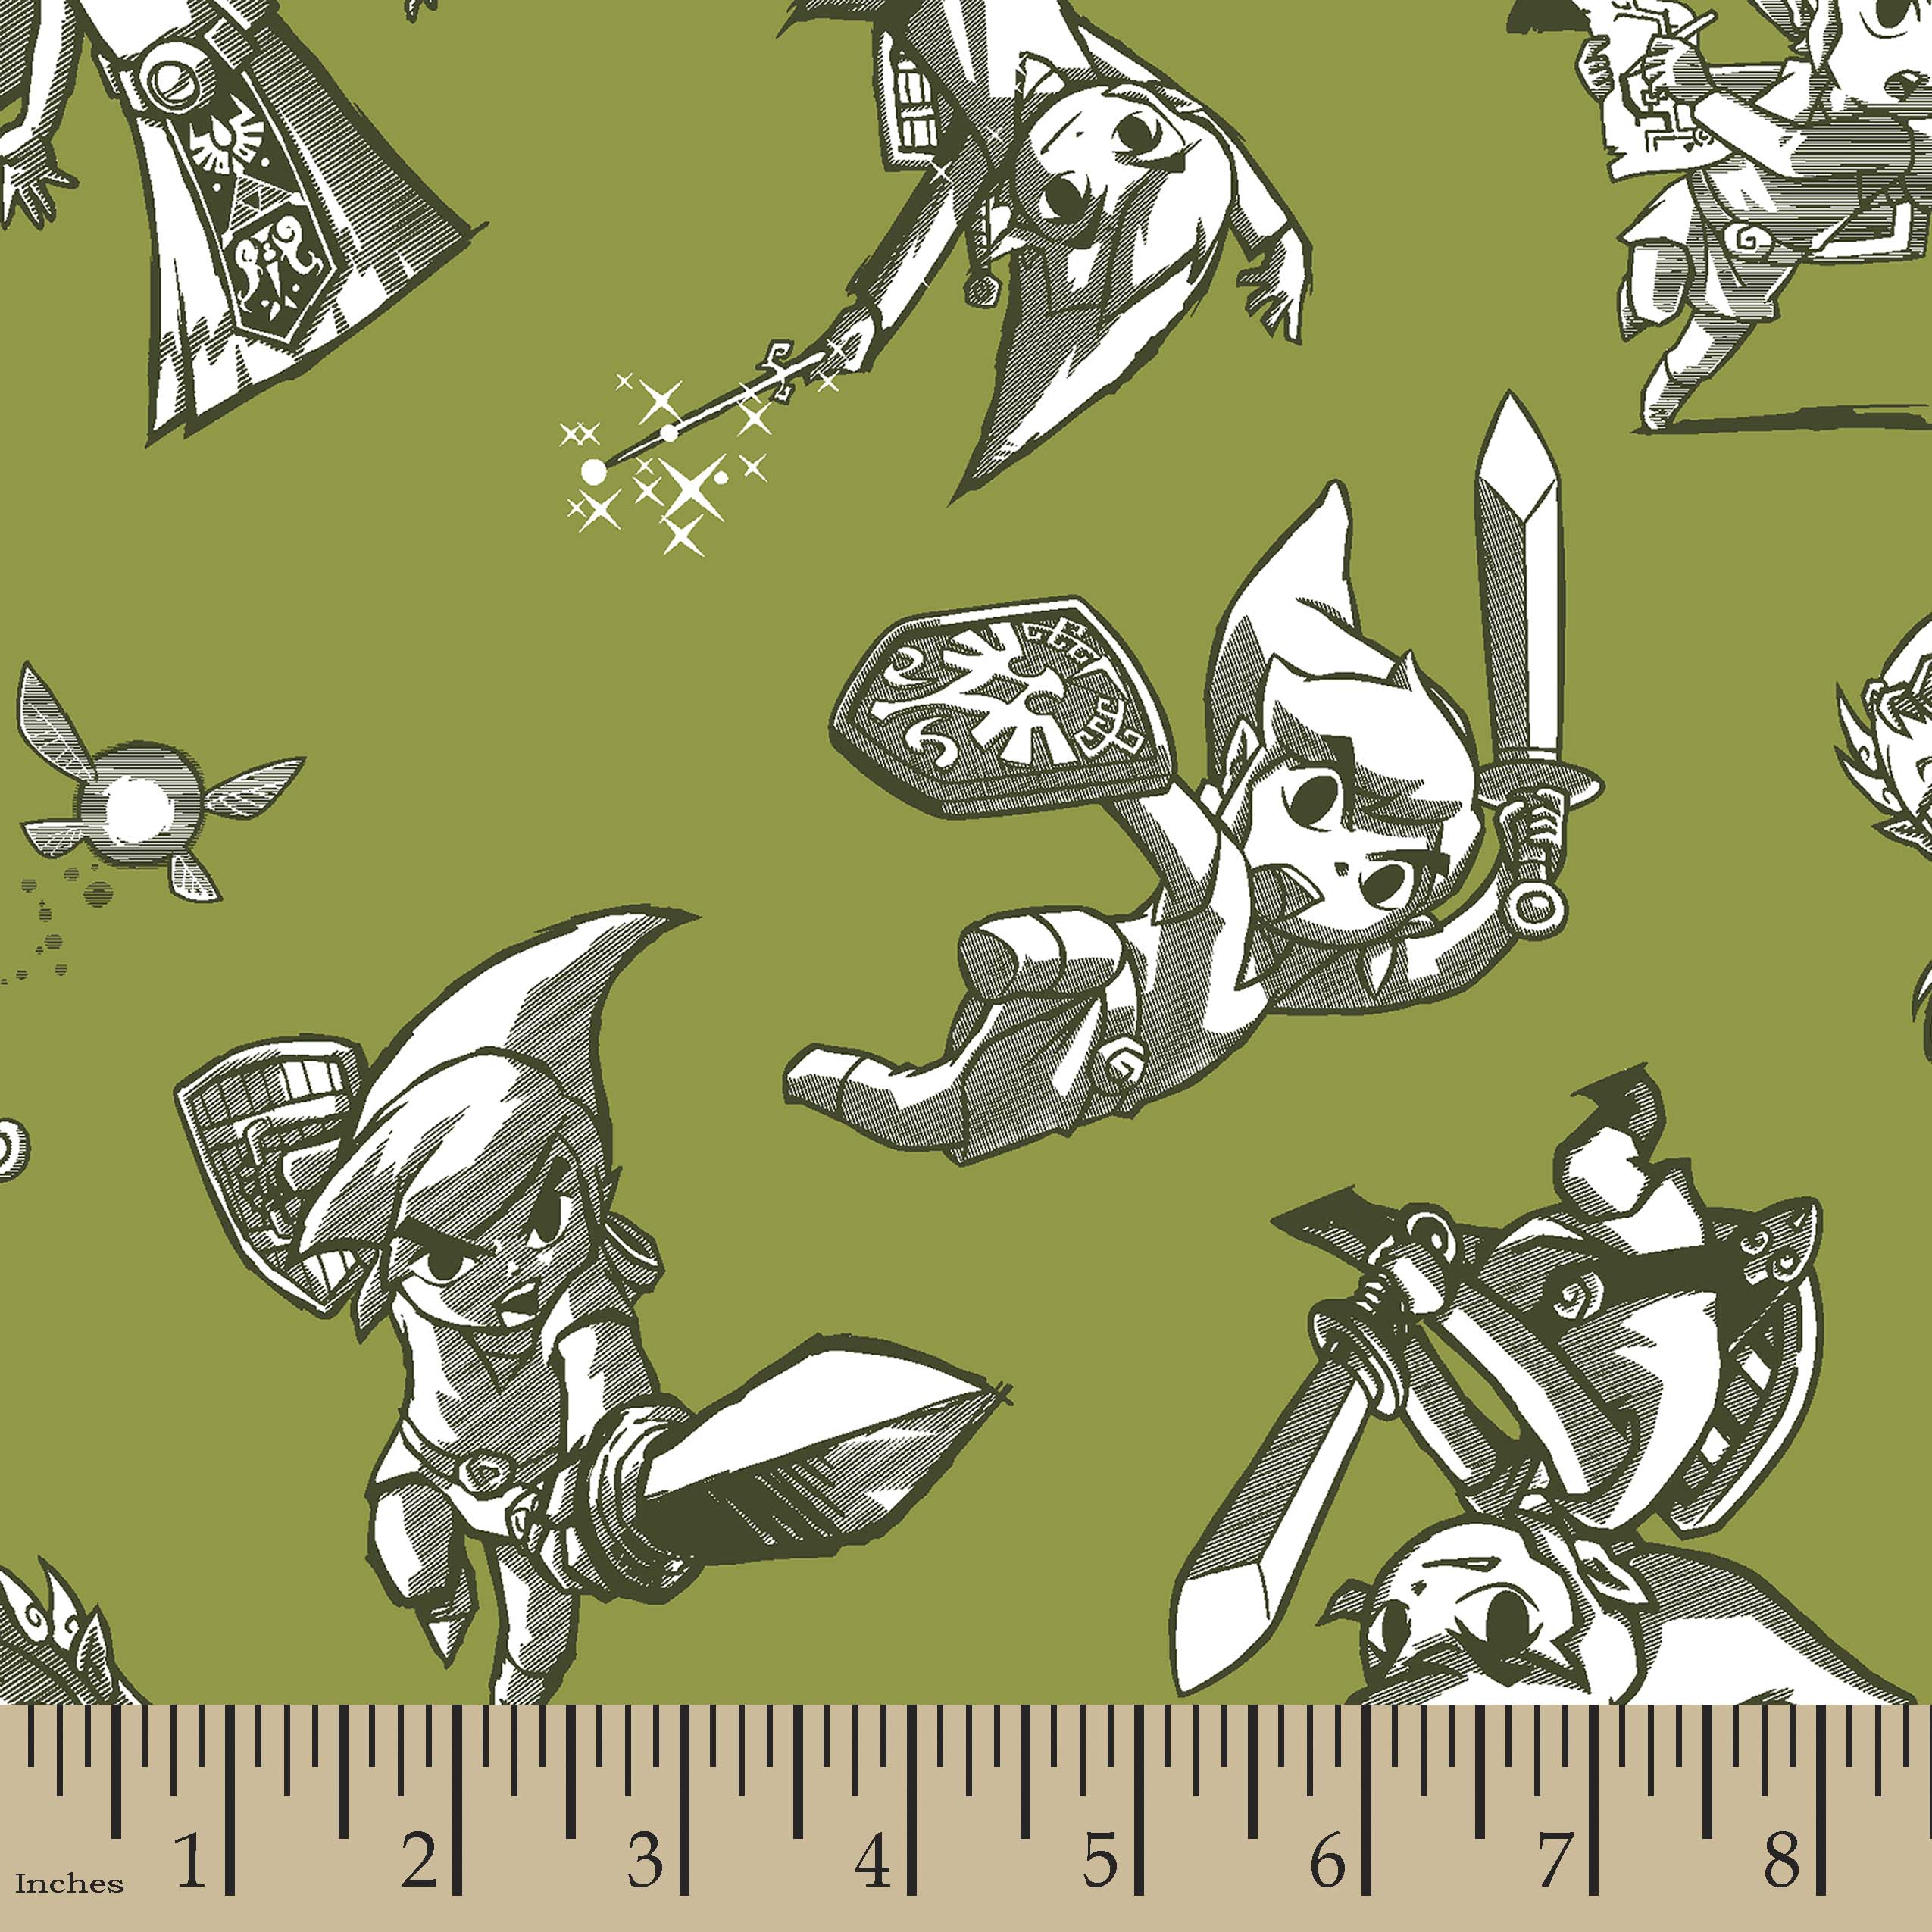 Nintendo The Legend of Zelda Print Fabric